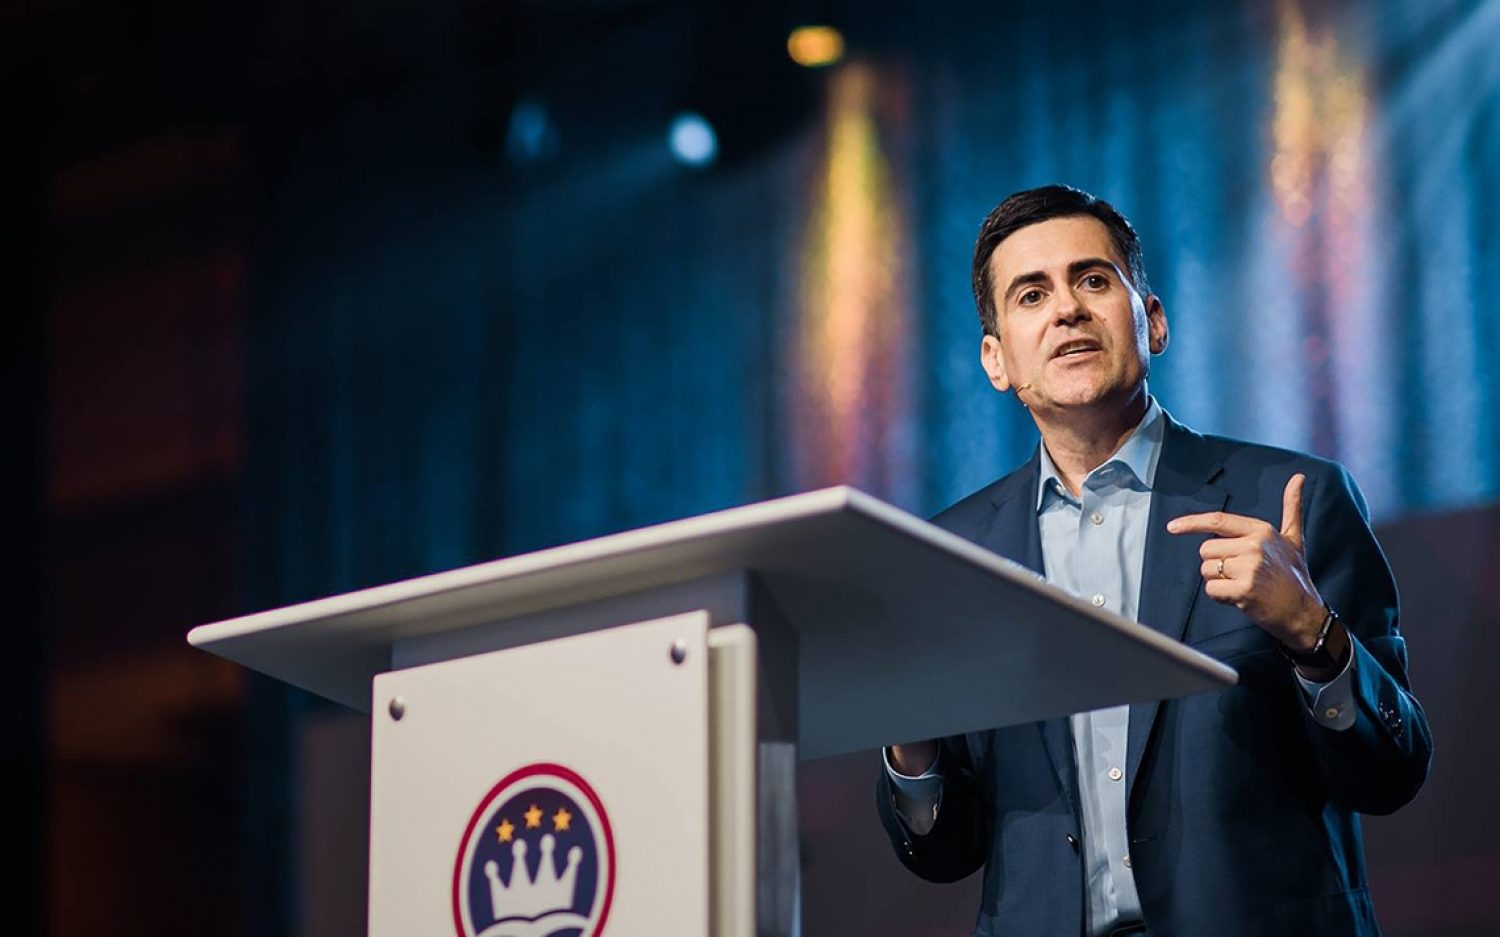 Evangelical leaders speak out on AI